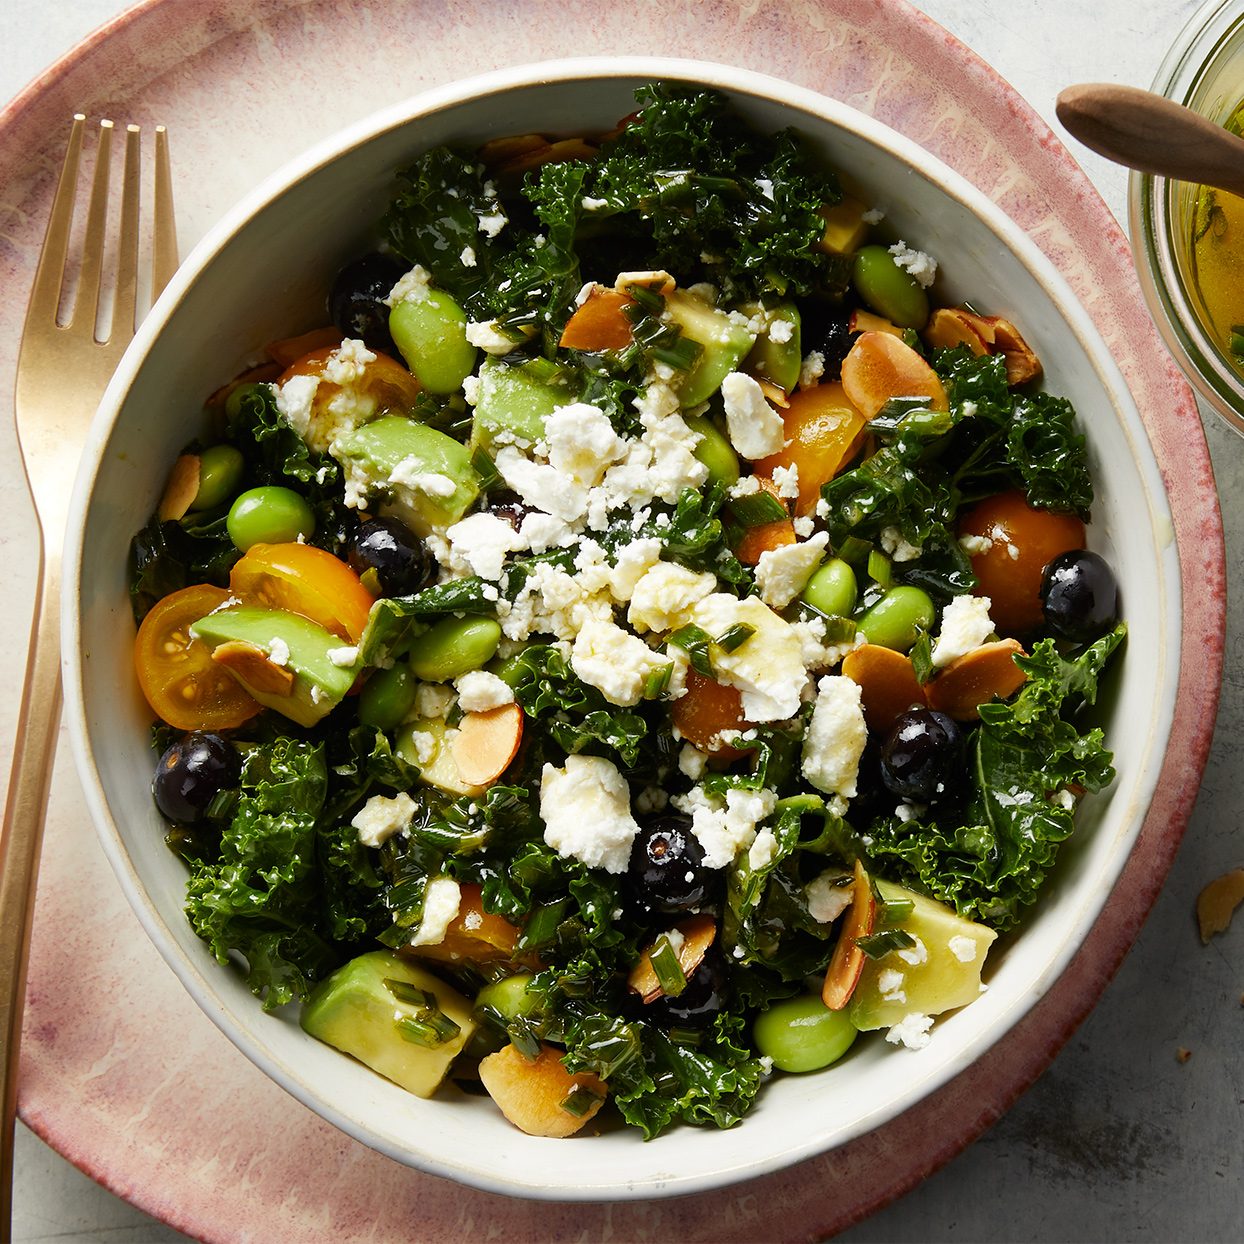 Kale & Avocado Salad with Blueberries & Edamame